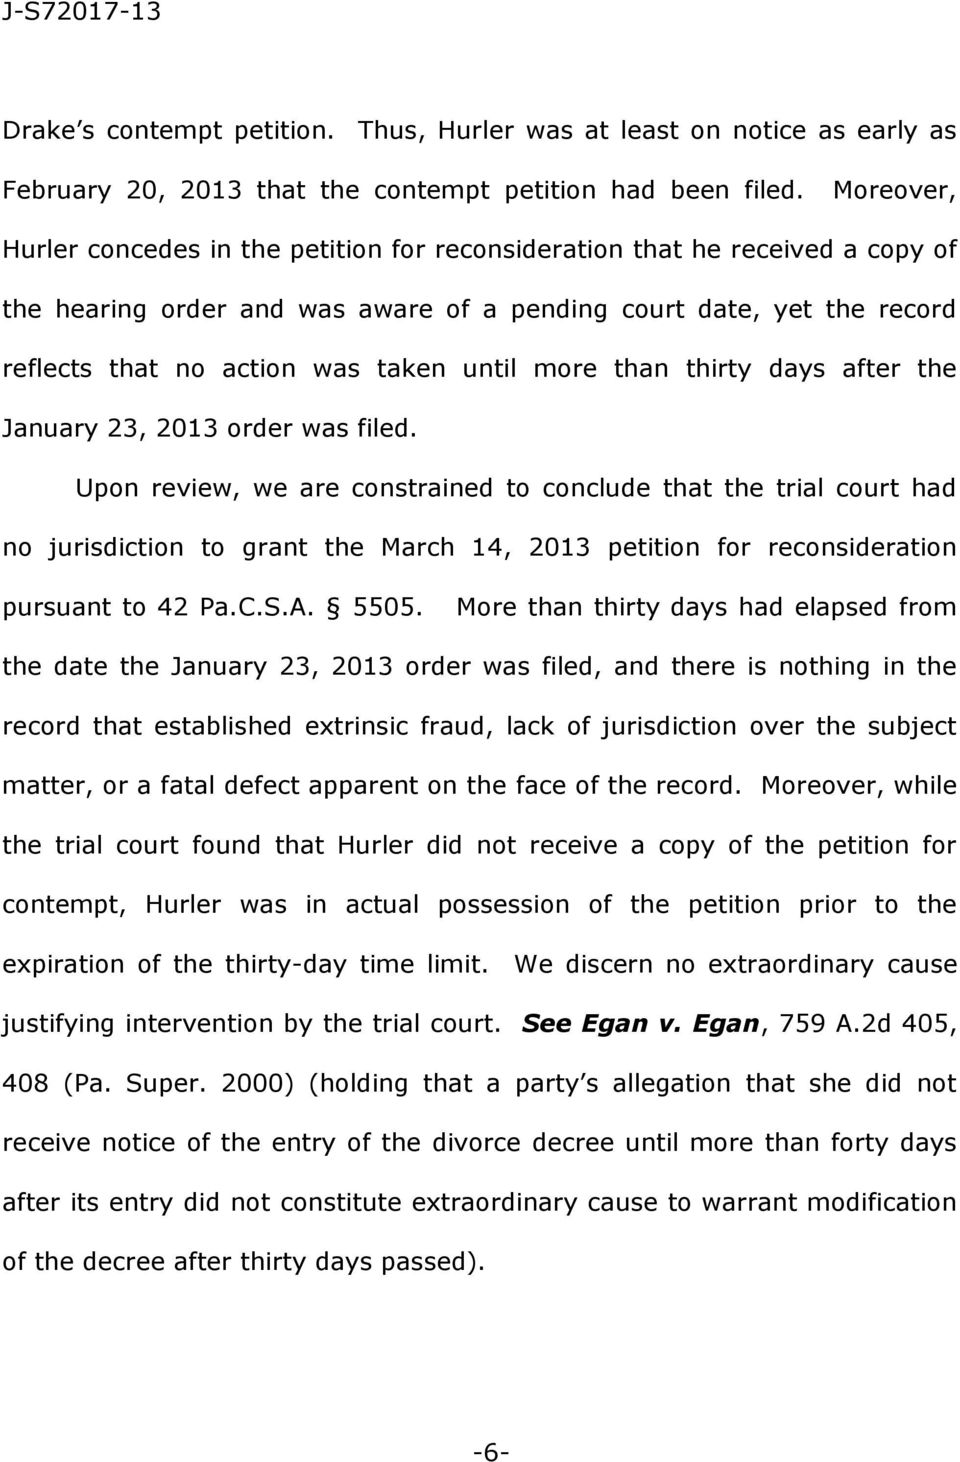 until more than thirty days after the January 23, 2013 order was filed.